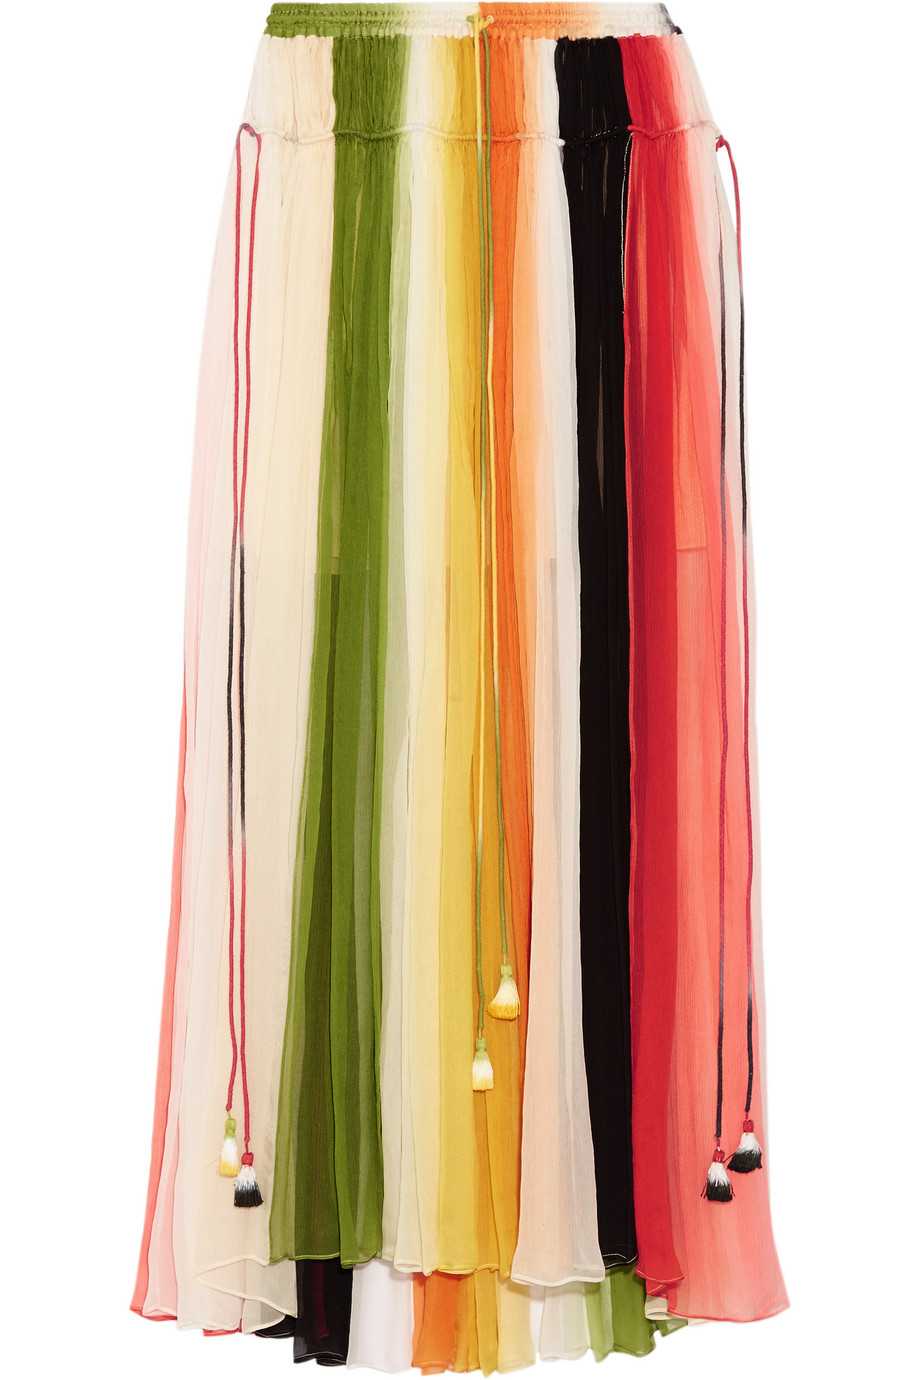 Chloé Striped Silk-Crepon Maxi Skirt, Orange/Green, Women's, Size: 34